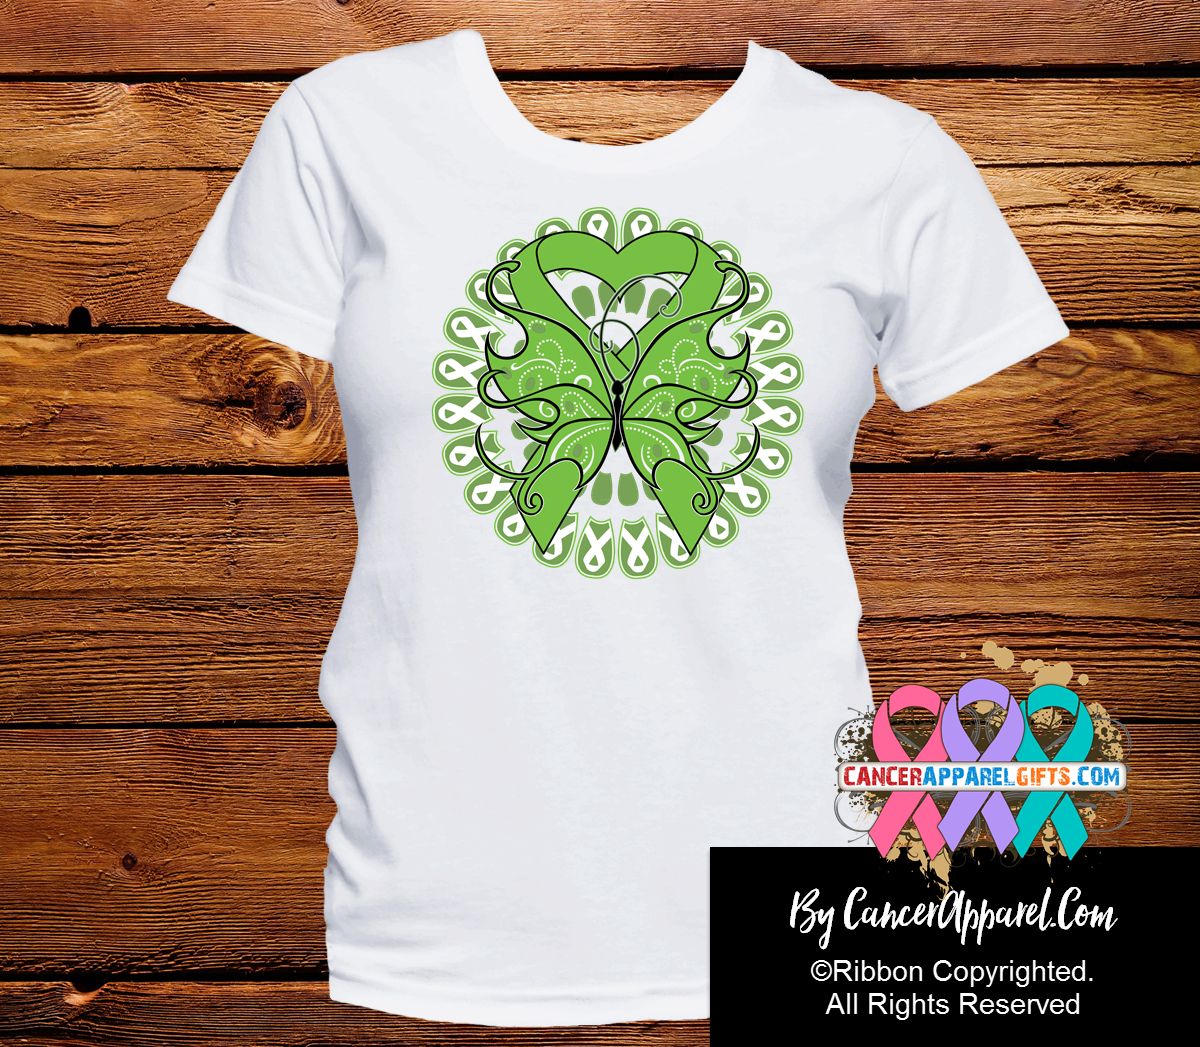 Non-Hodgkins Lymphoma Stunning Butterfly Shirts - Cancer Apparel and Gifts